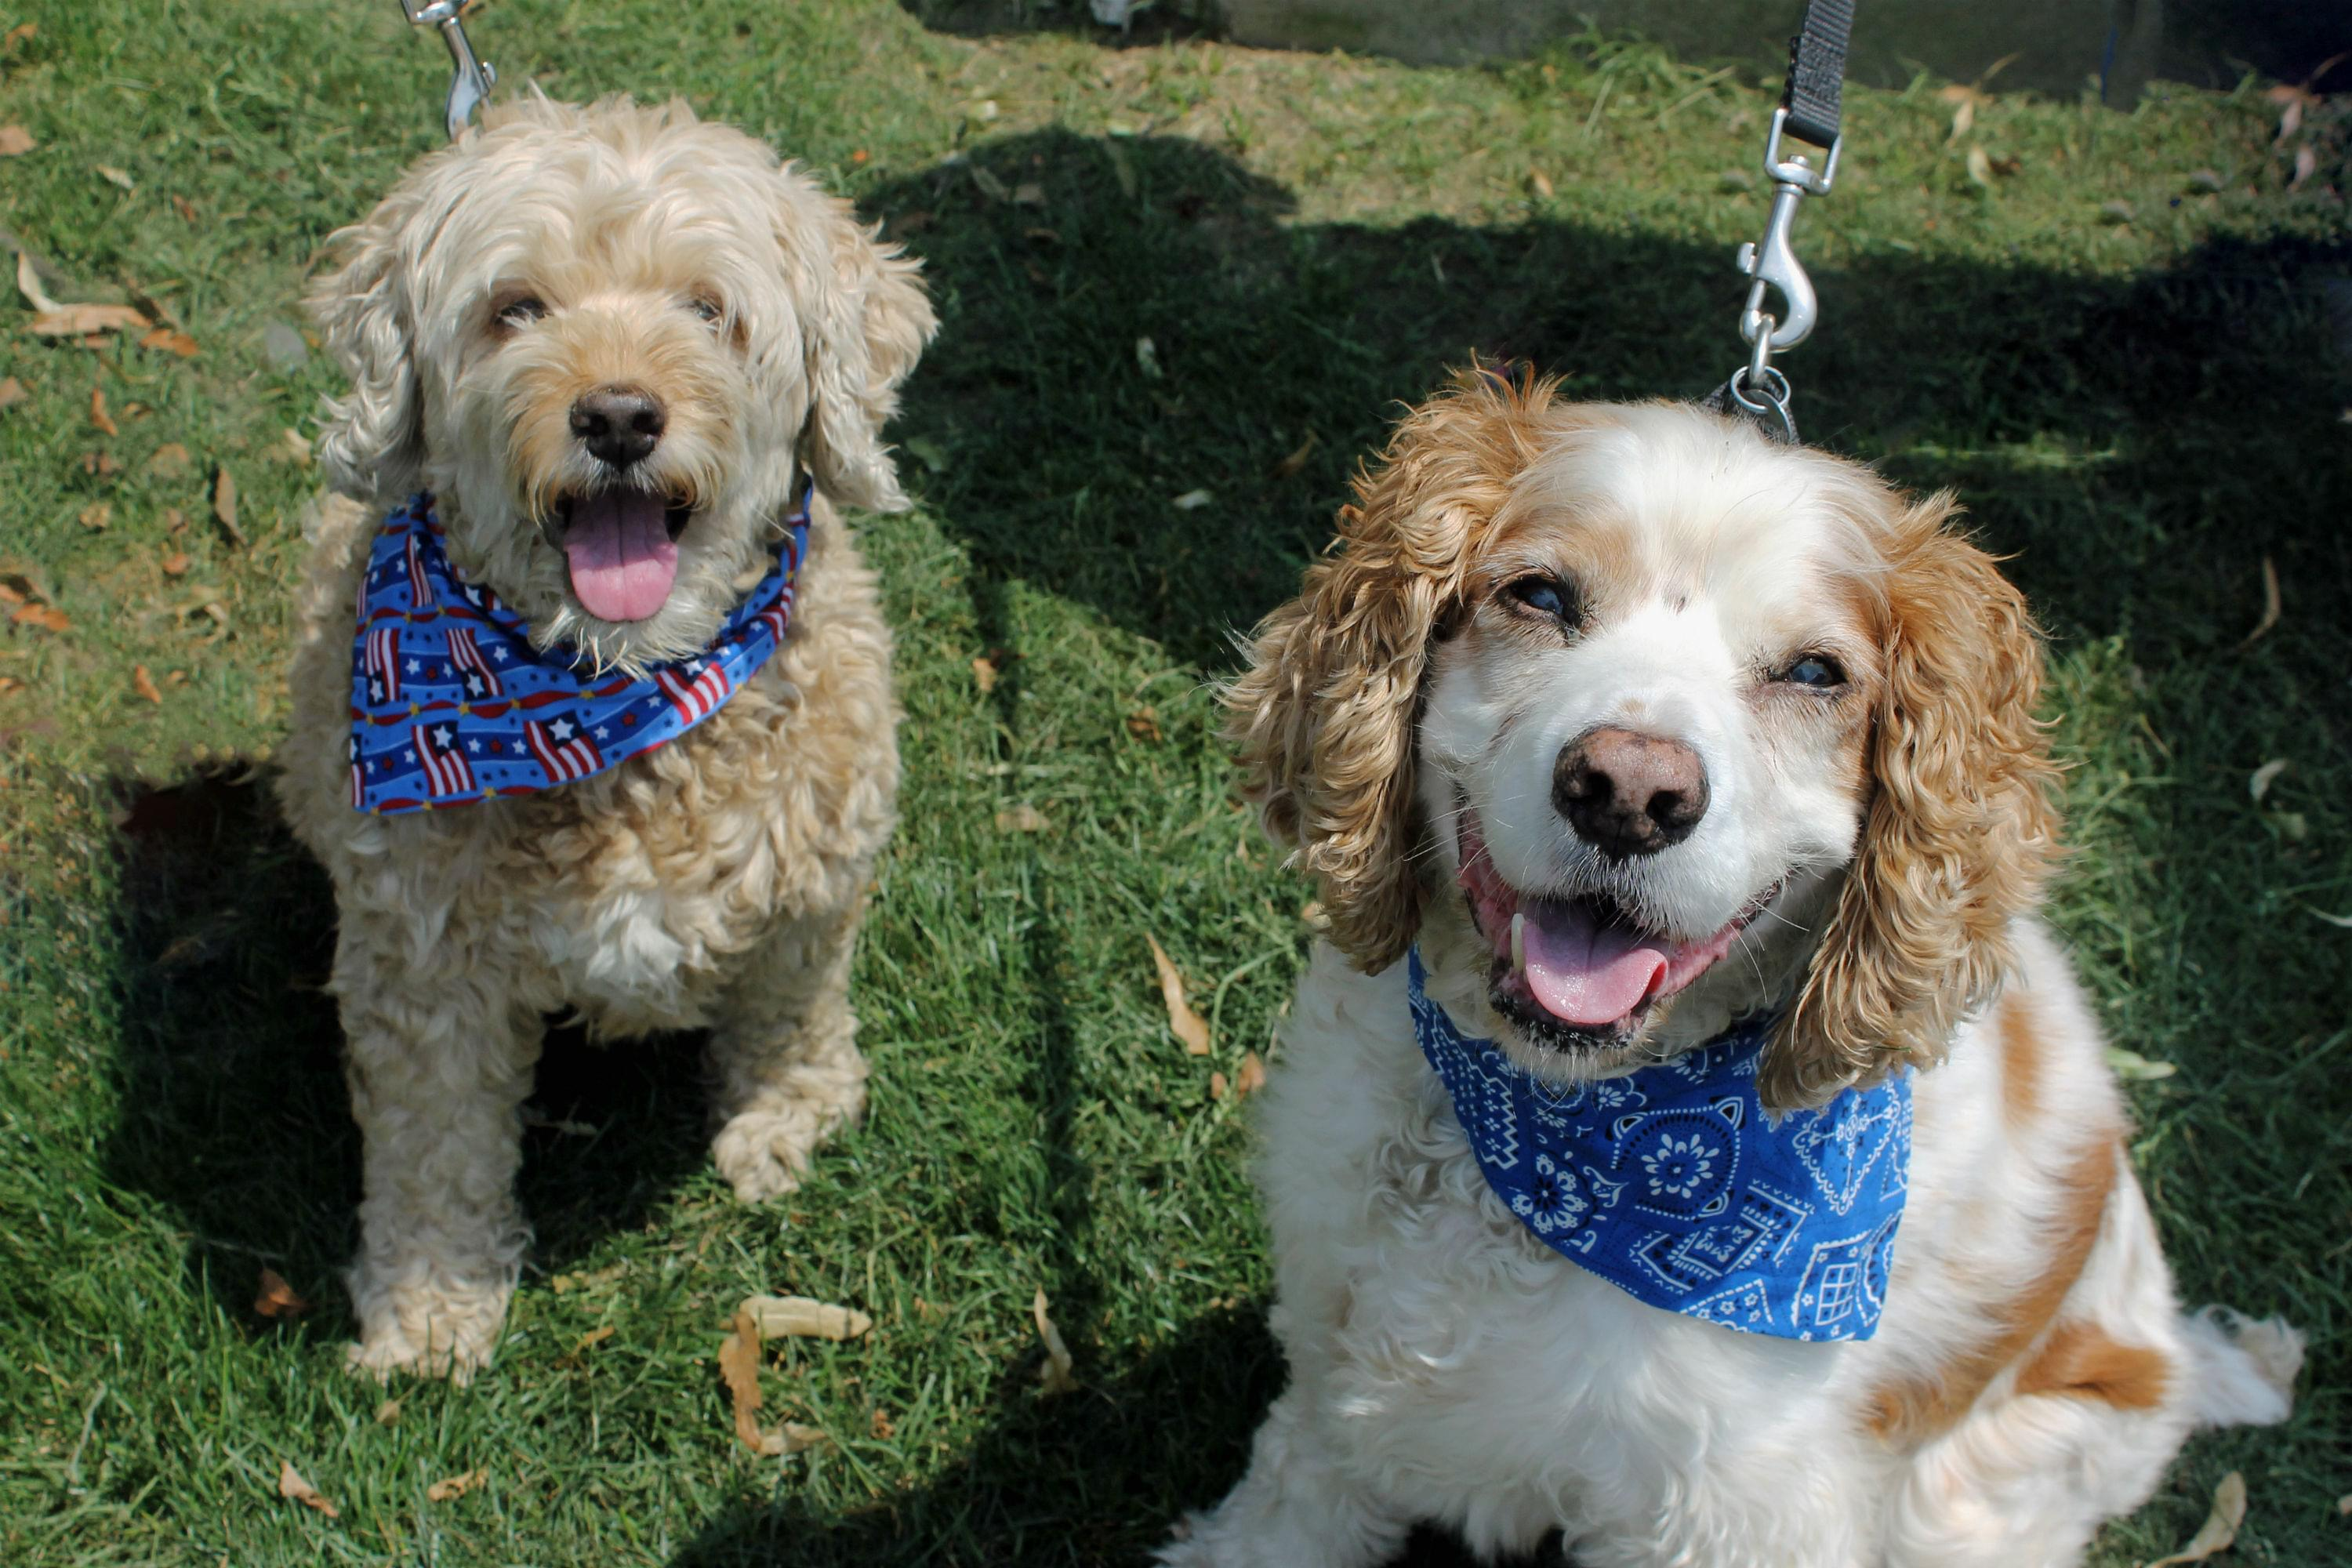 PAWS pet of the week: Teddy & Sherman!